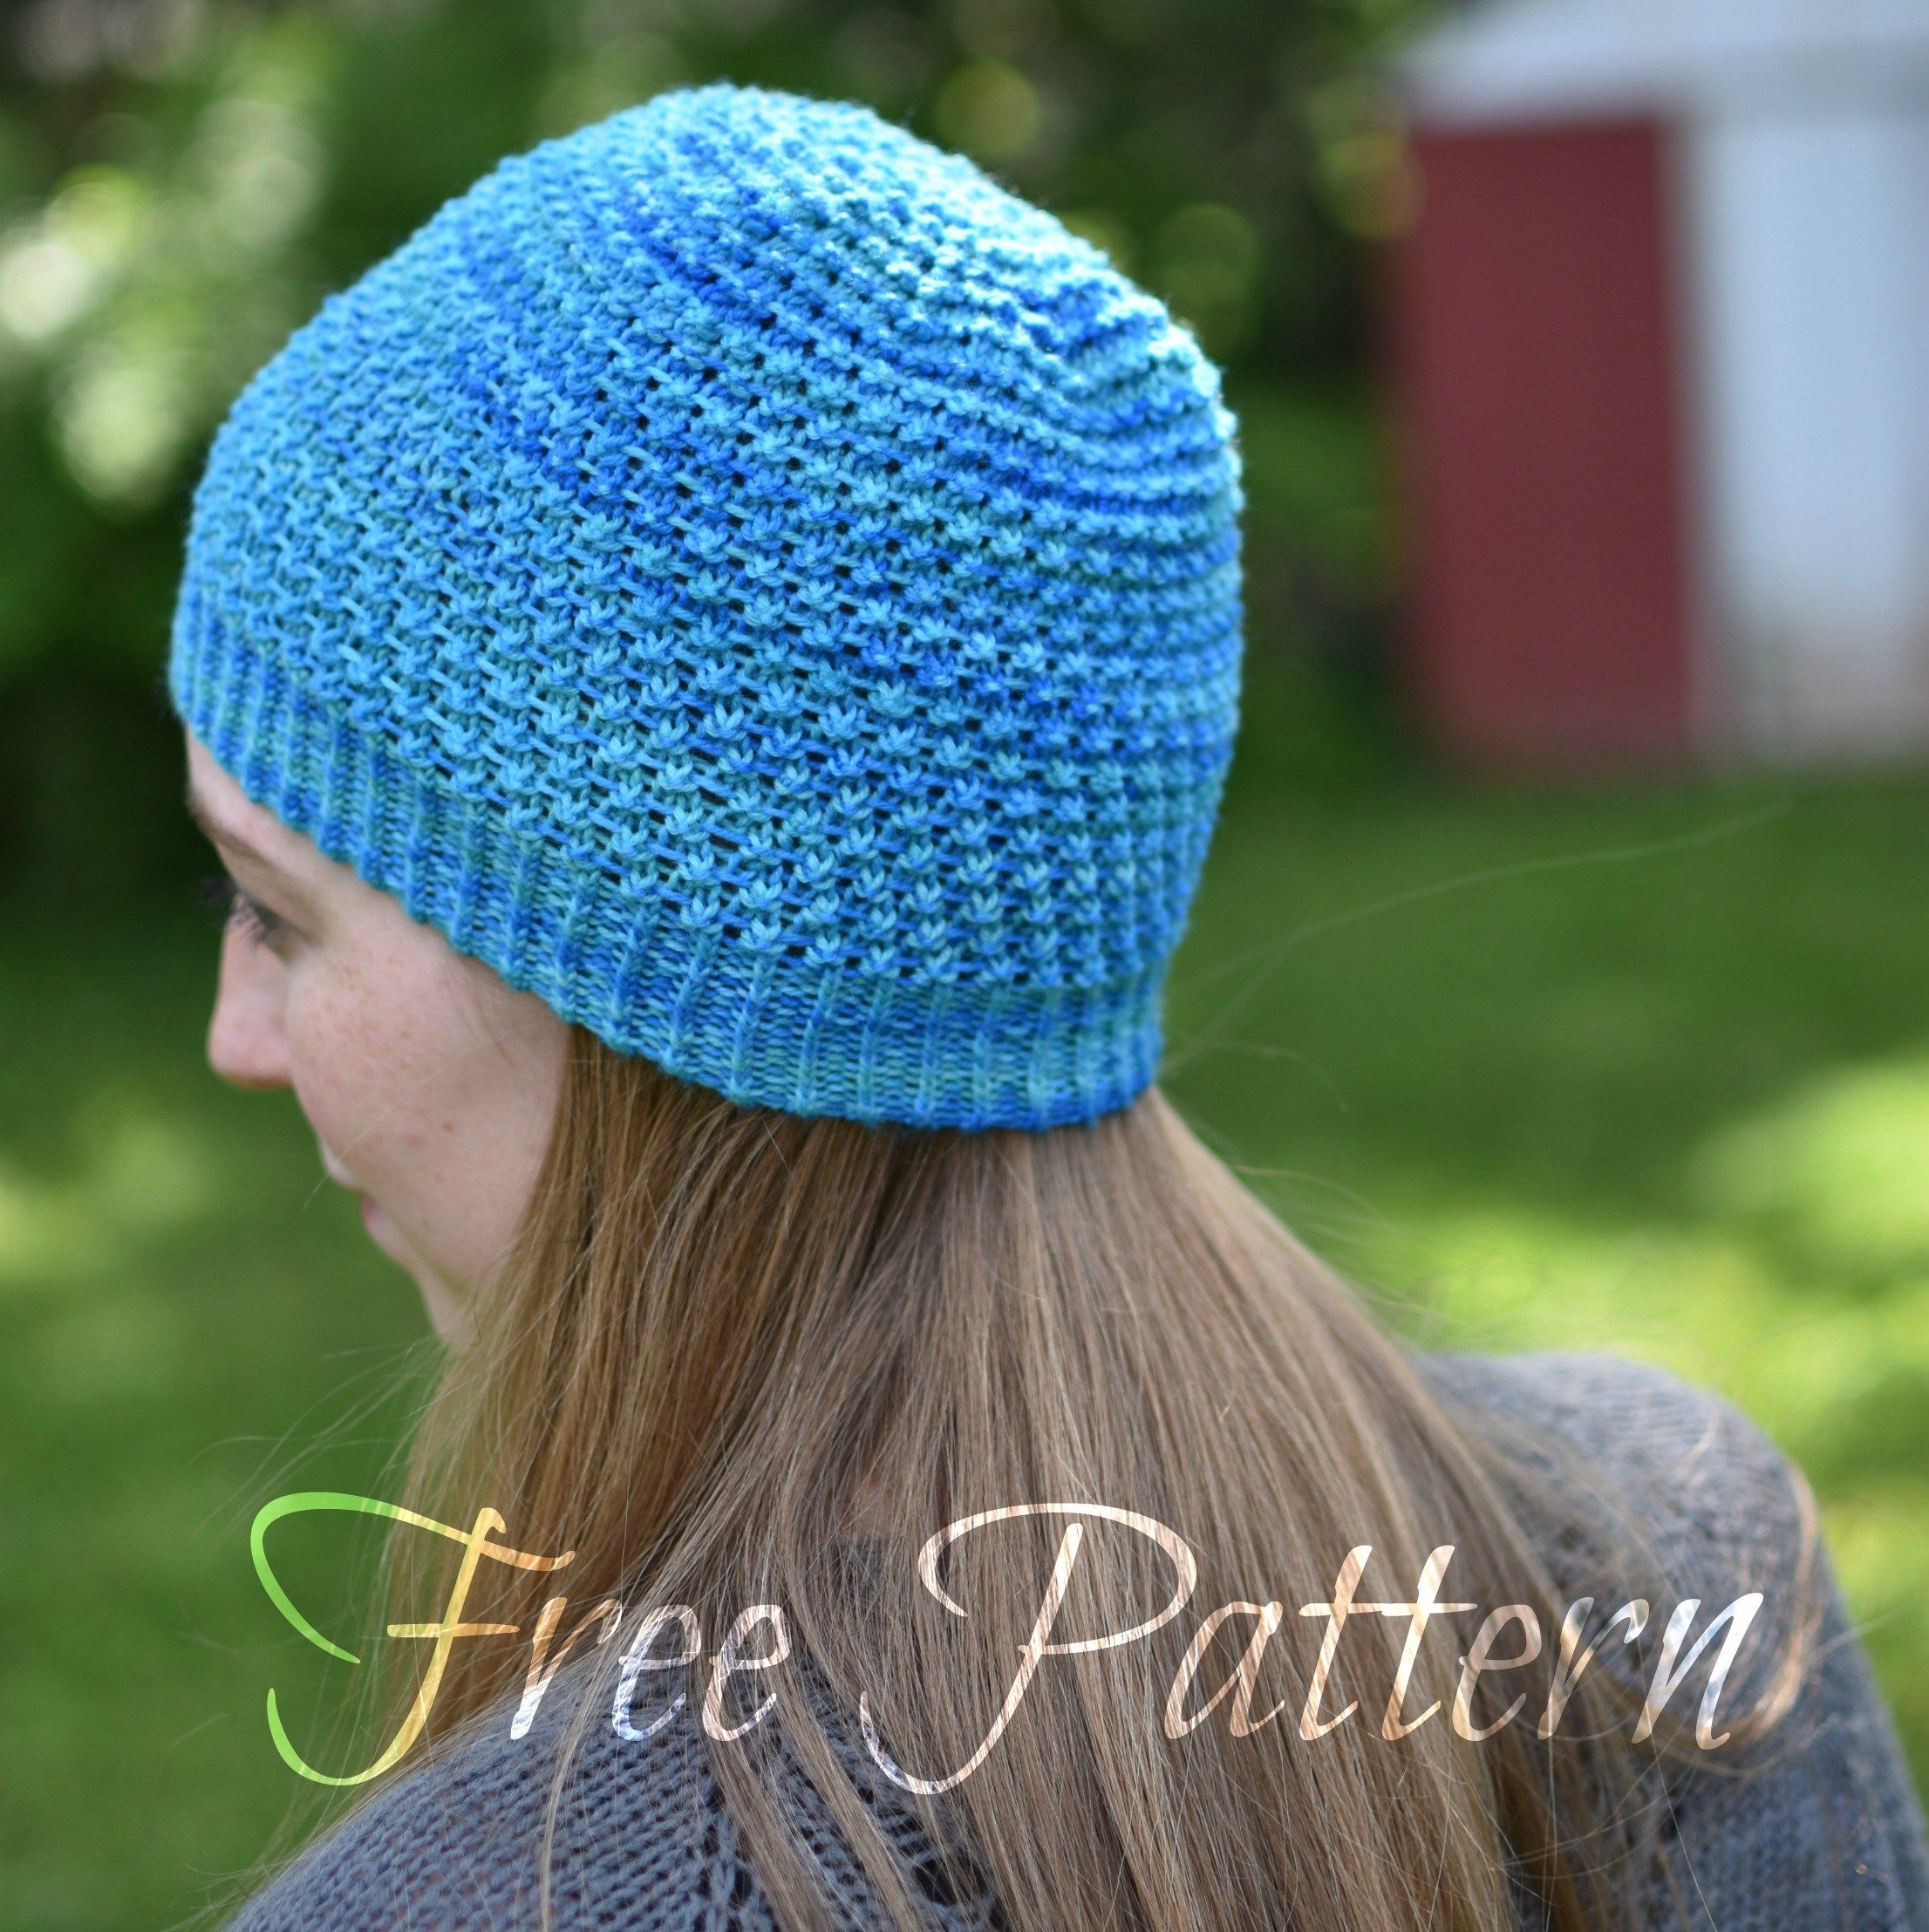 f8bac5f2d78 Free lightweight knit hat pattern. Find this Pin and more on knitting and  crochet hats ...